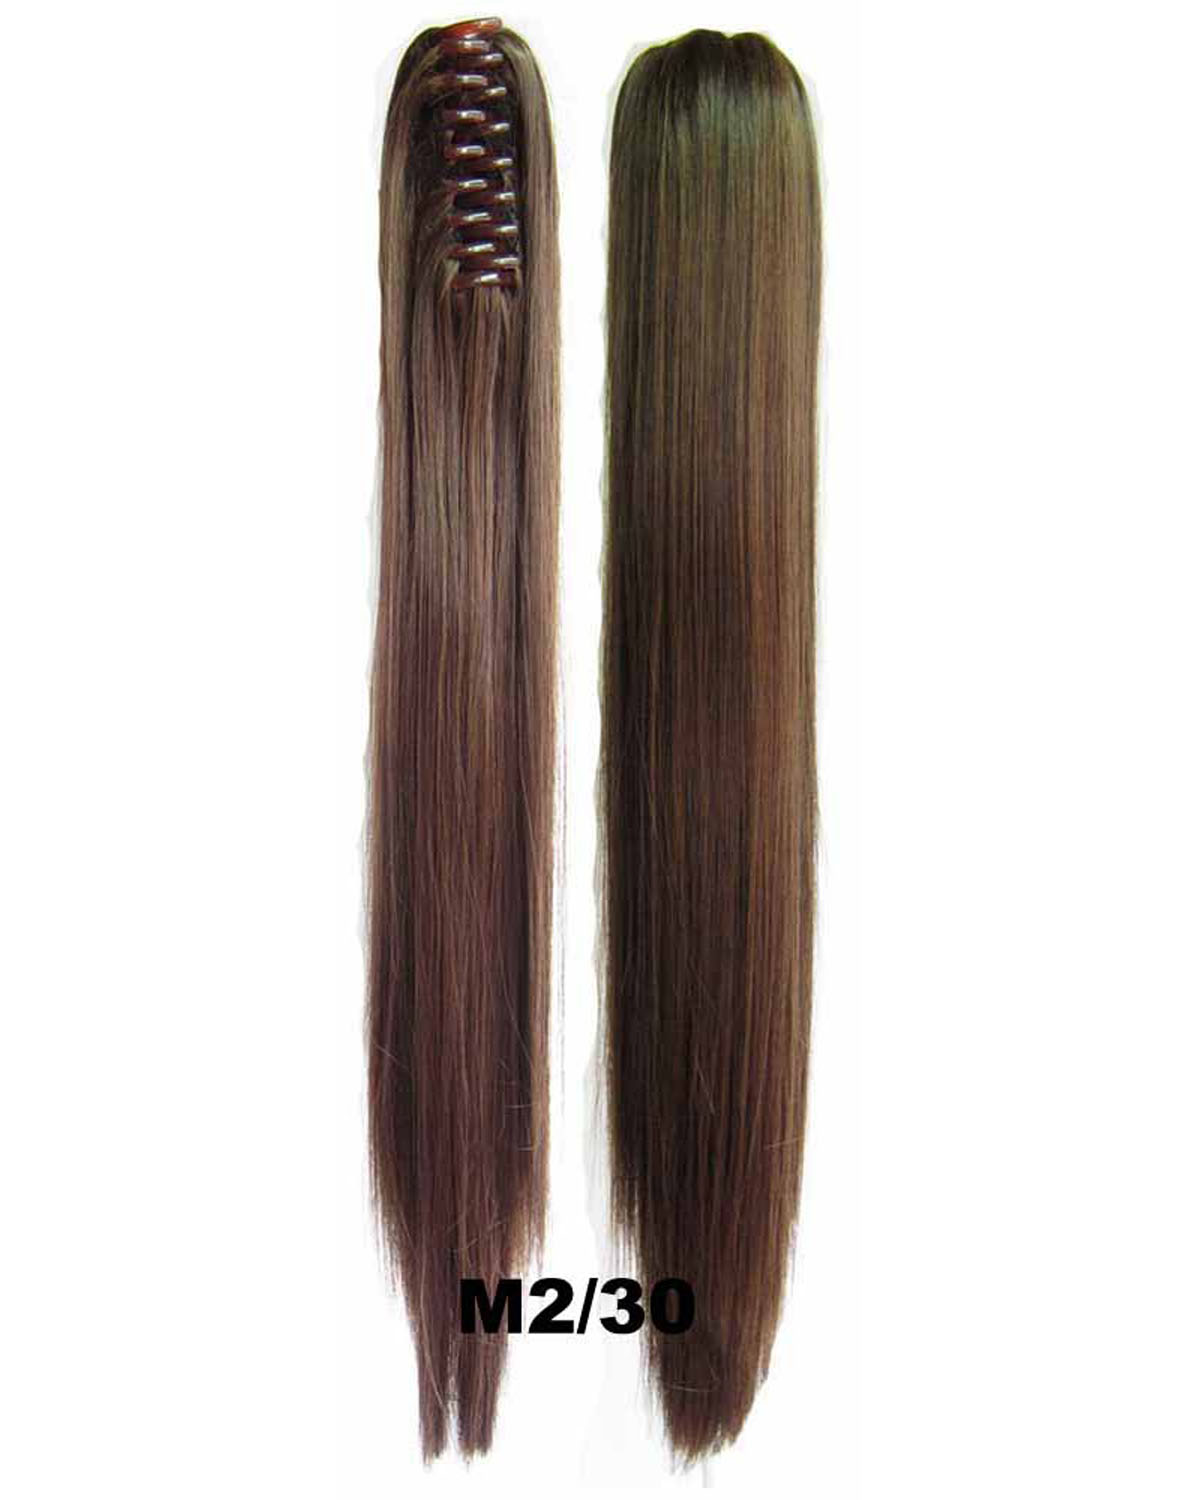 22 Inch Lady Elegant Straight and Long Claw Chip Synthetic Hair Ponytail M2/30